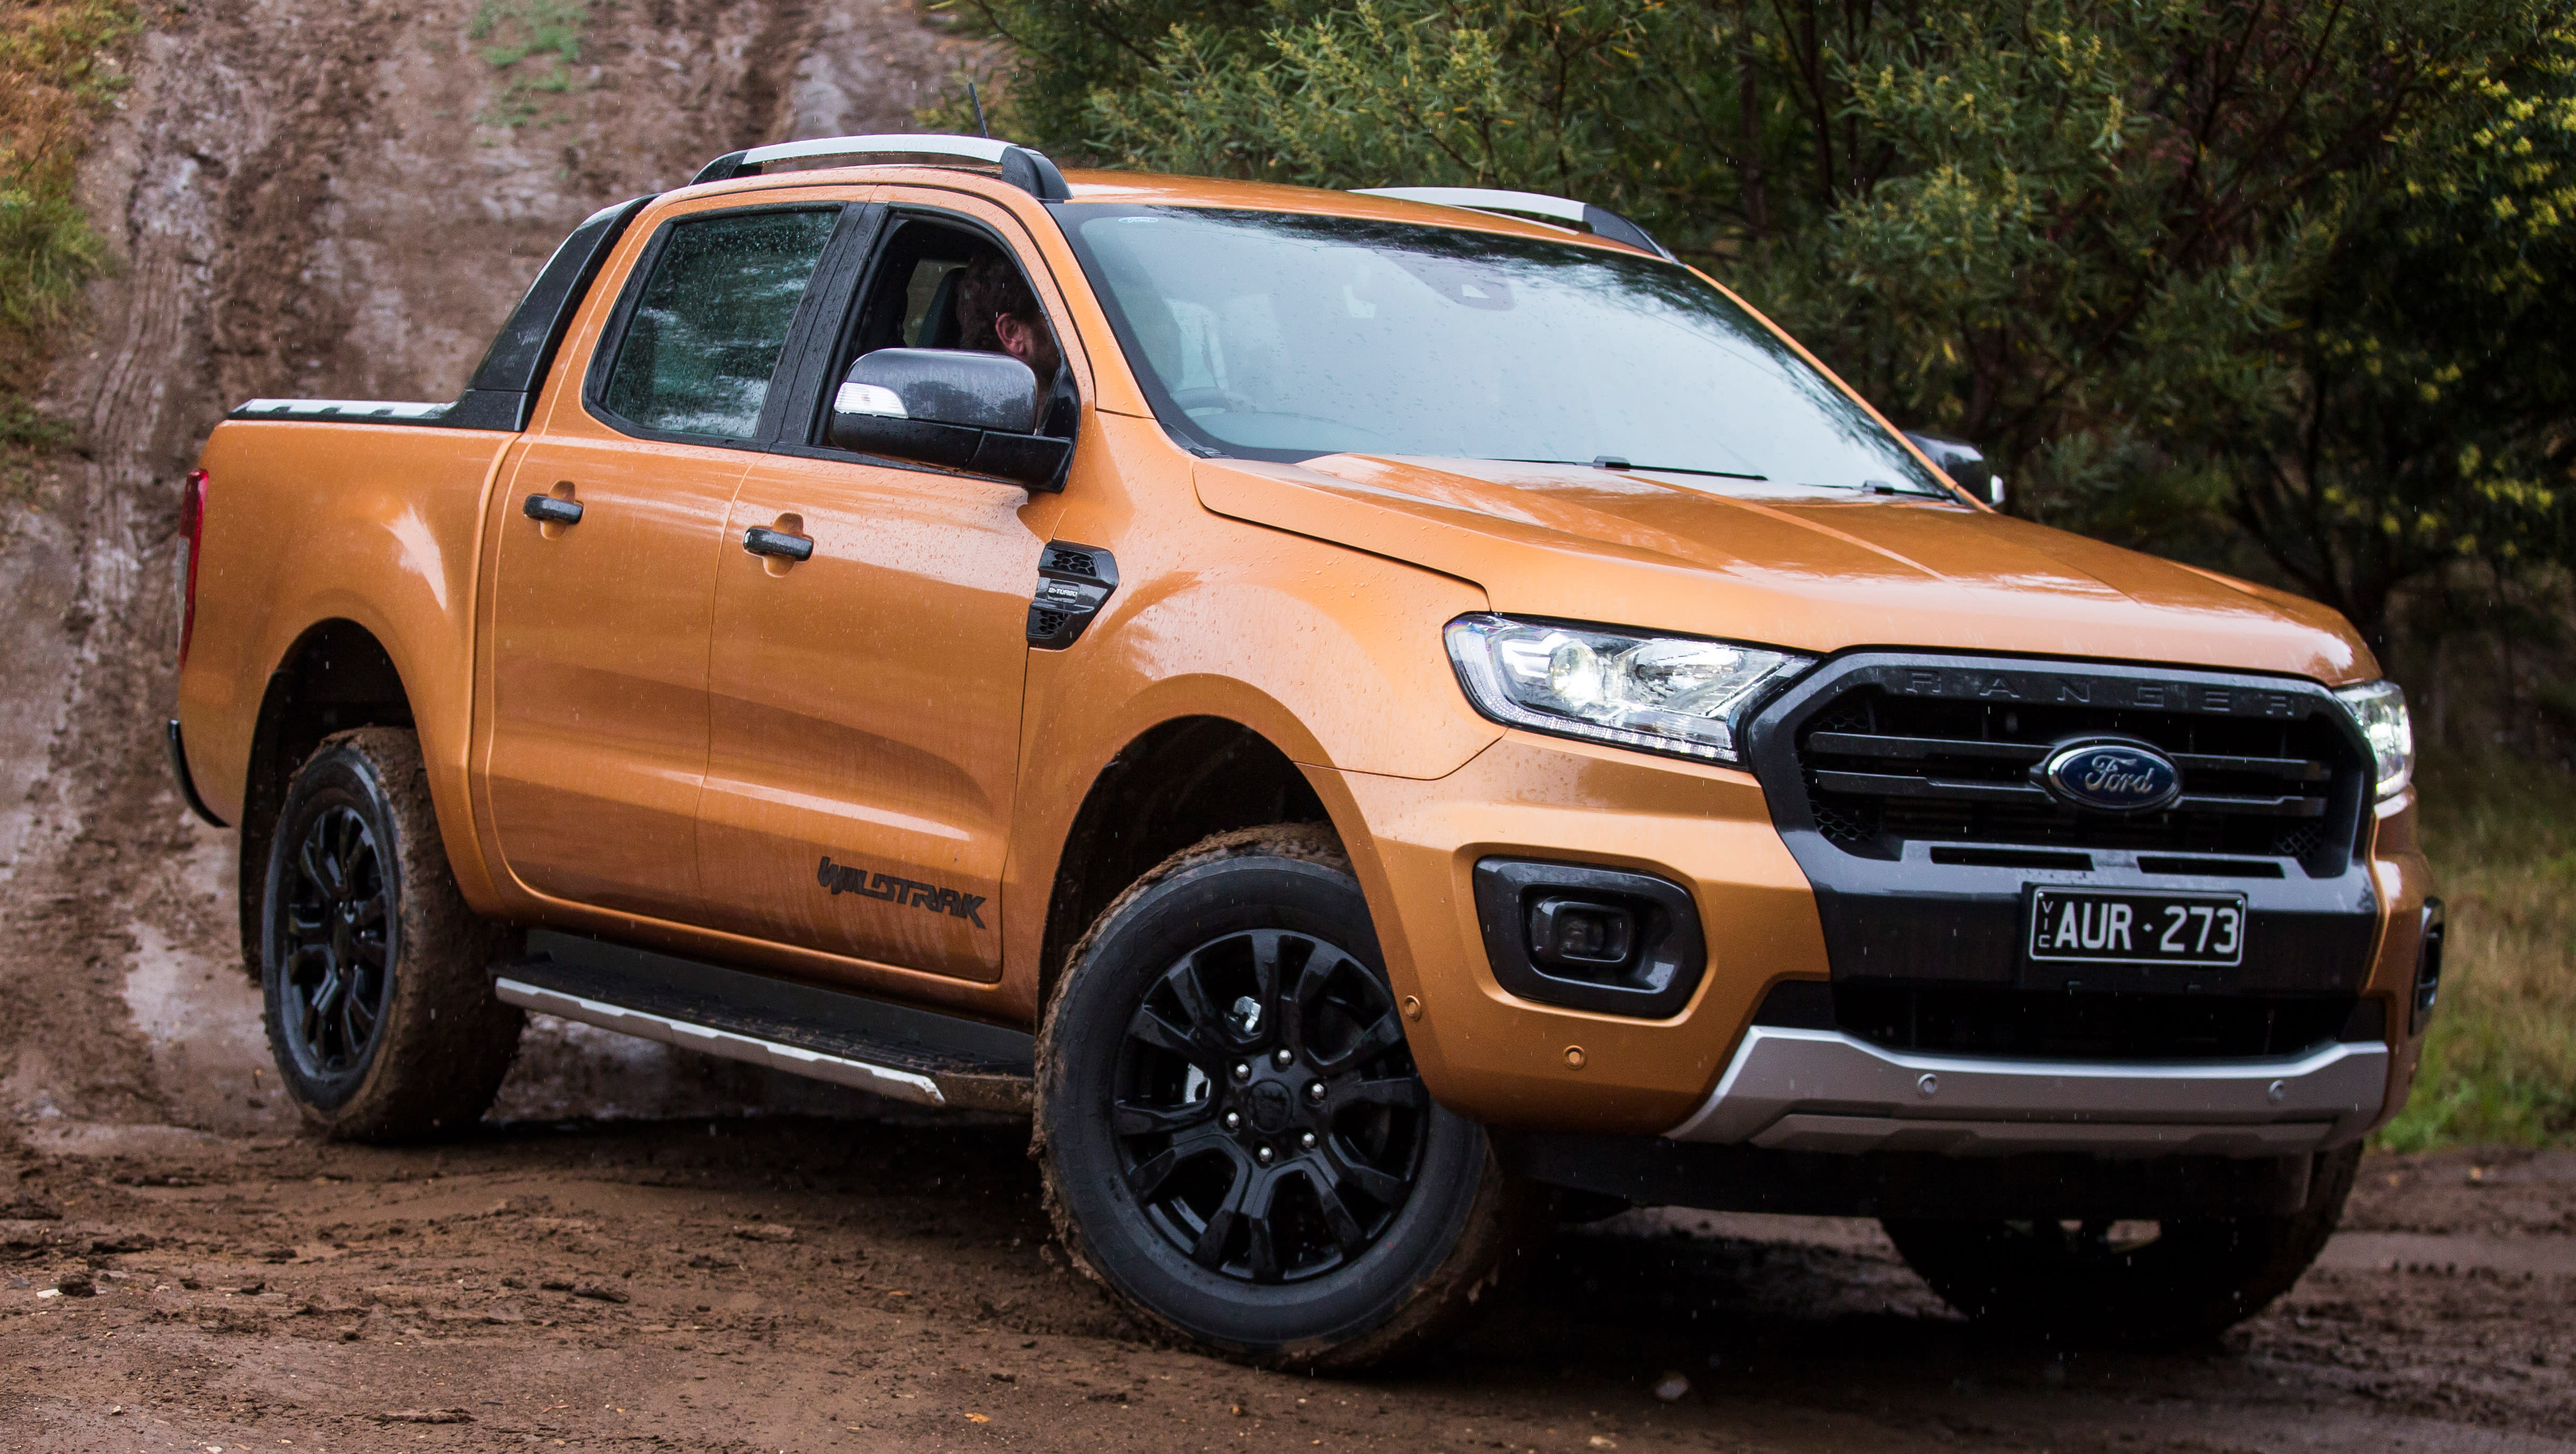 Ford Ranger Warranty Everything You Need To Know